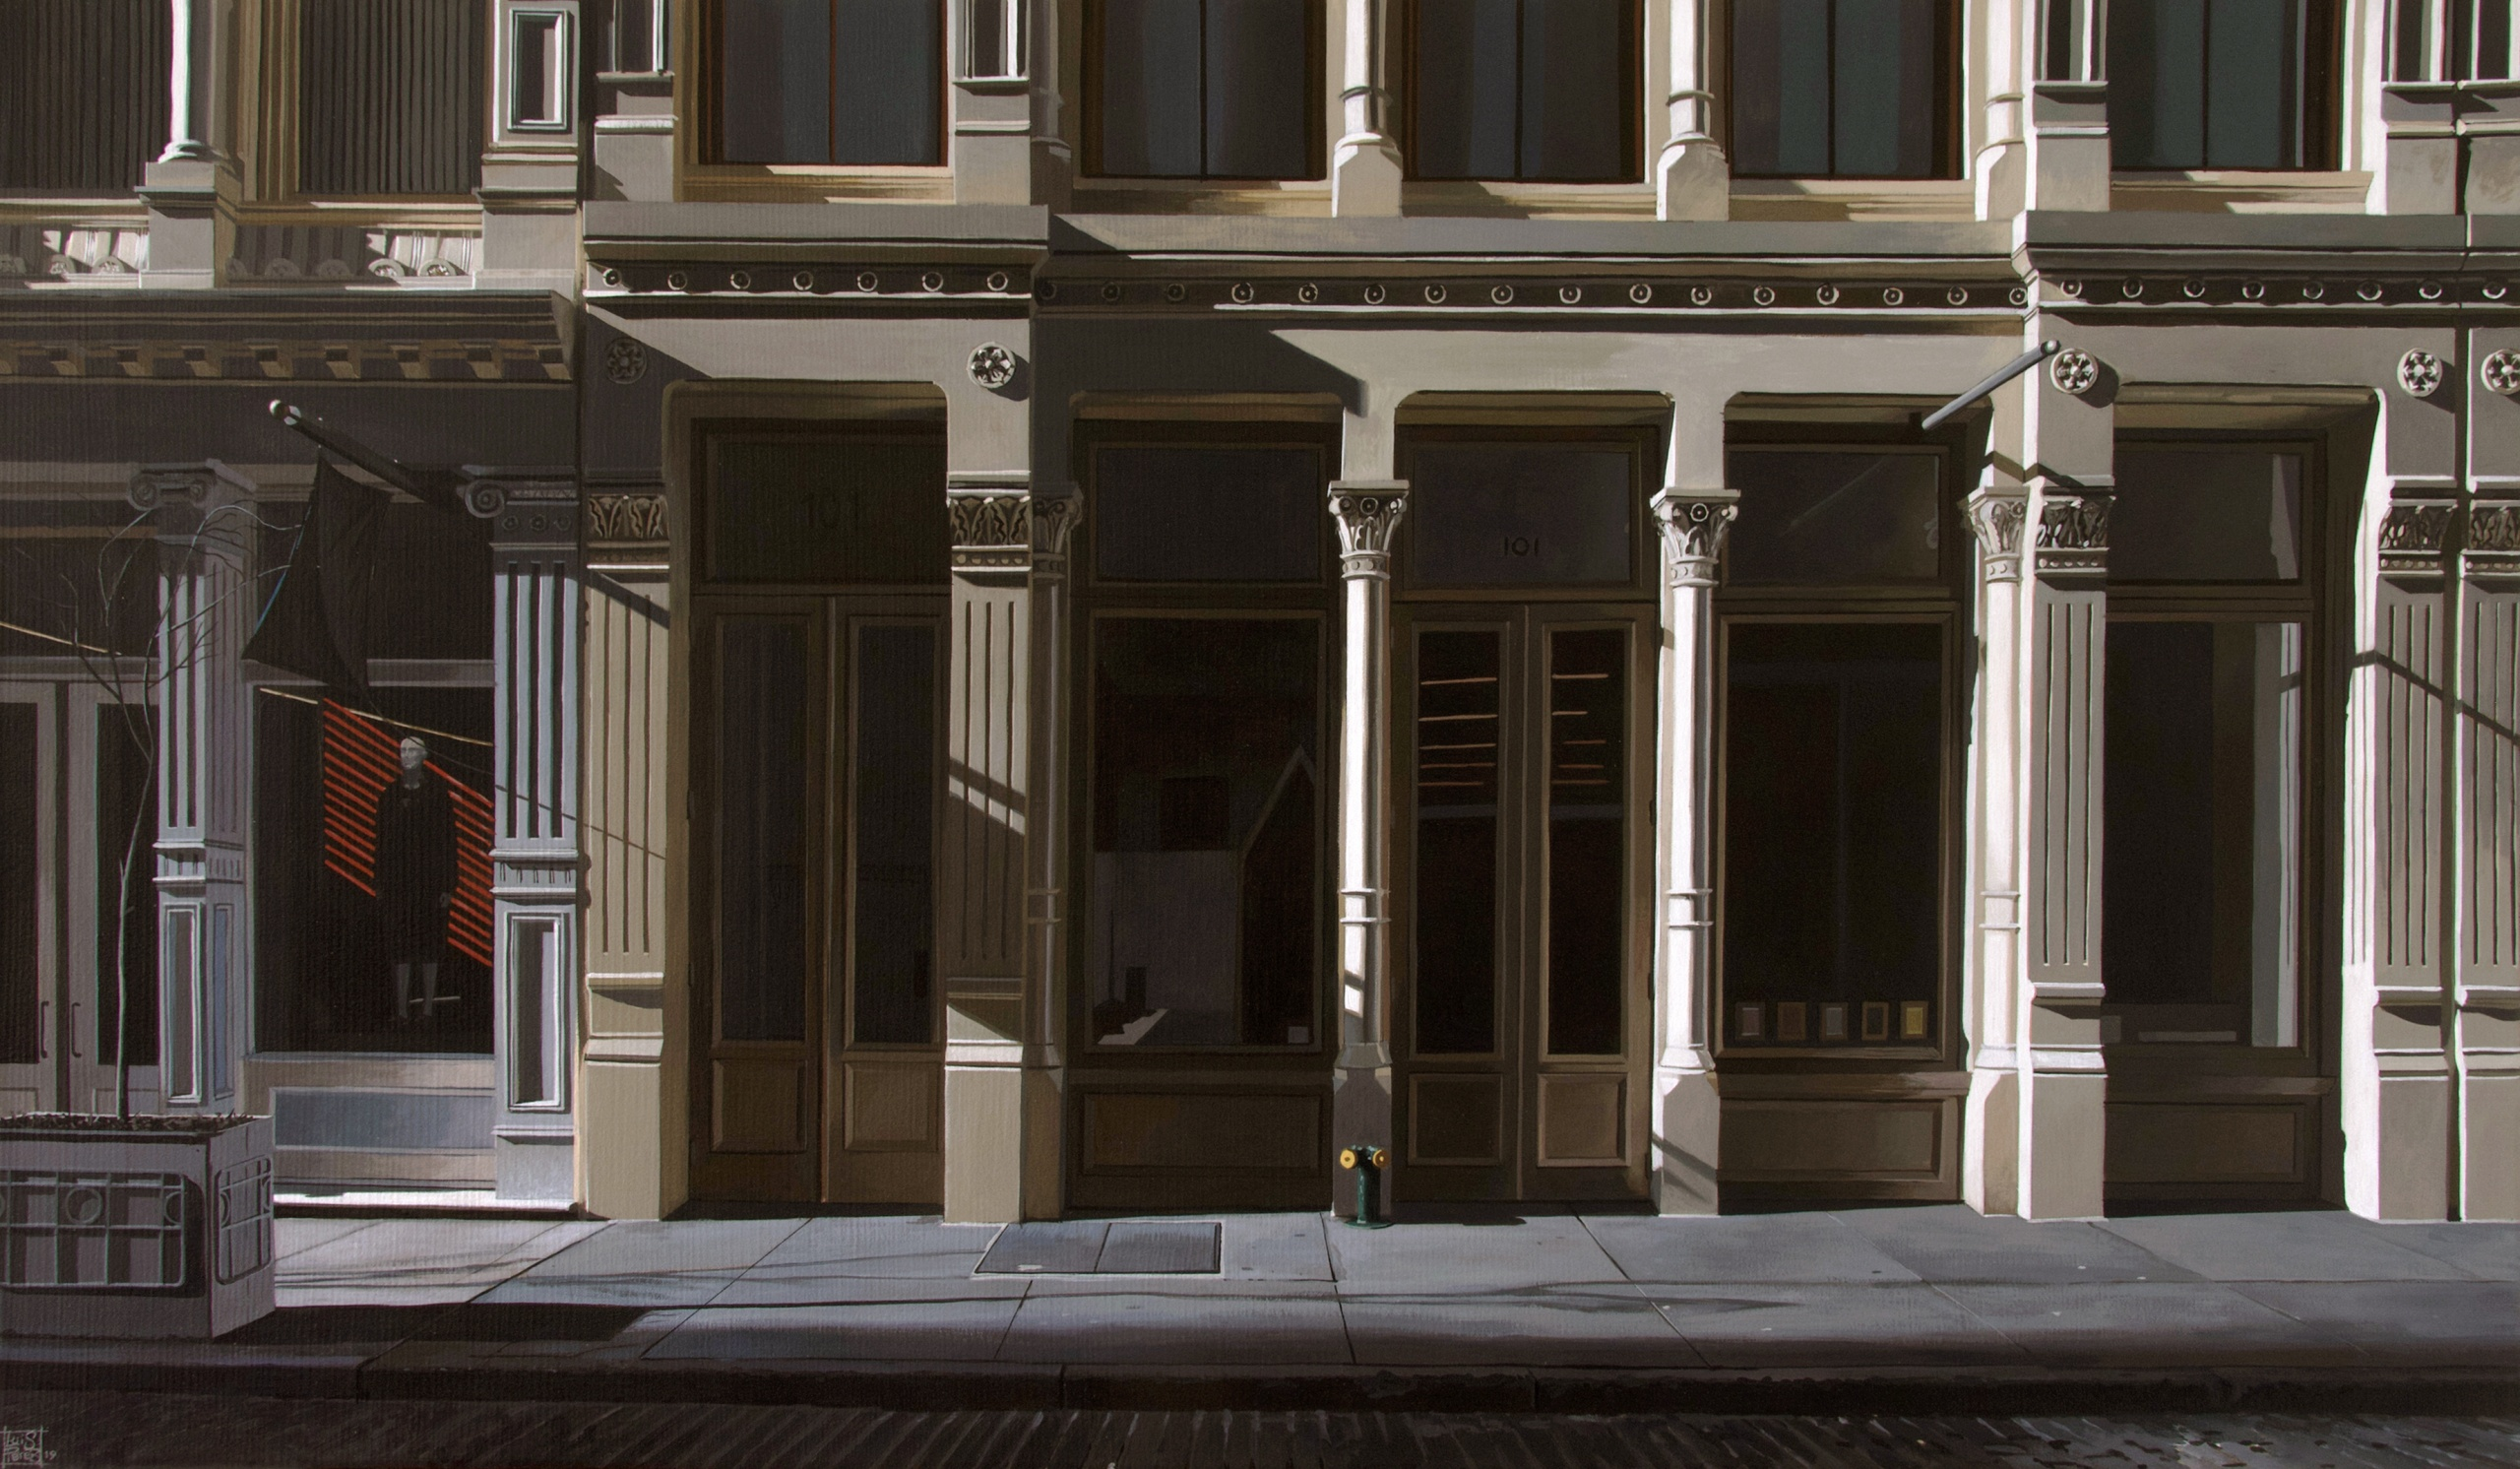 101 Greene Street, 1:33pm, Acrylic on canvas, 18 x 32 inches